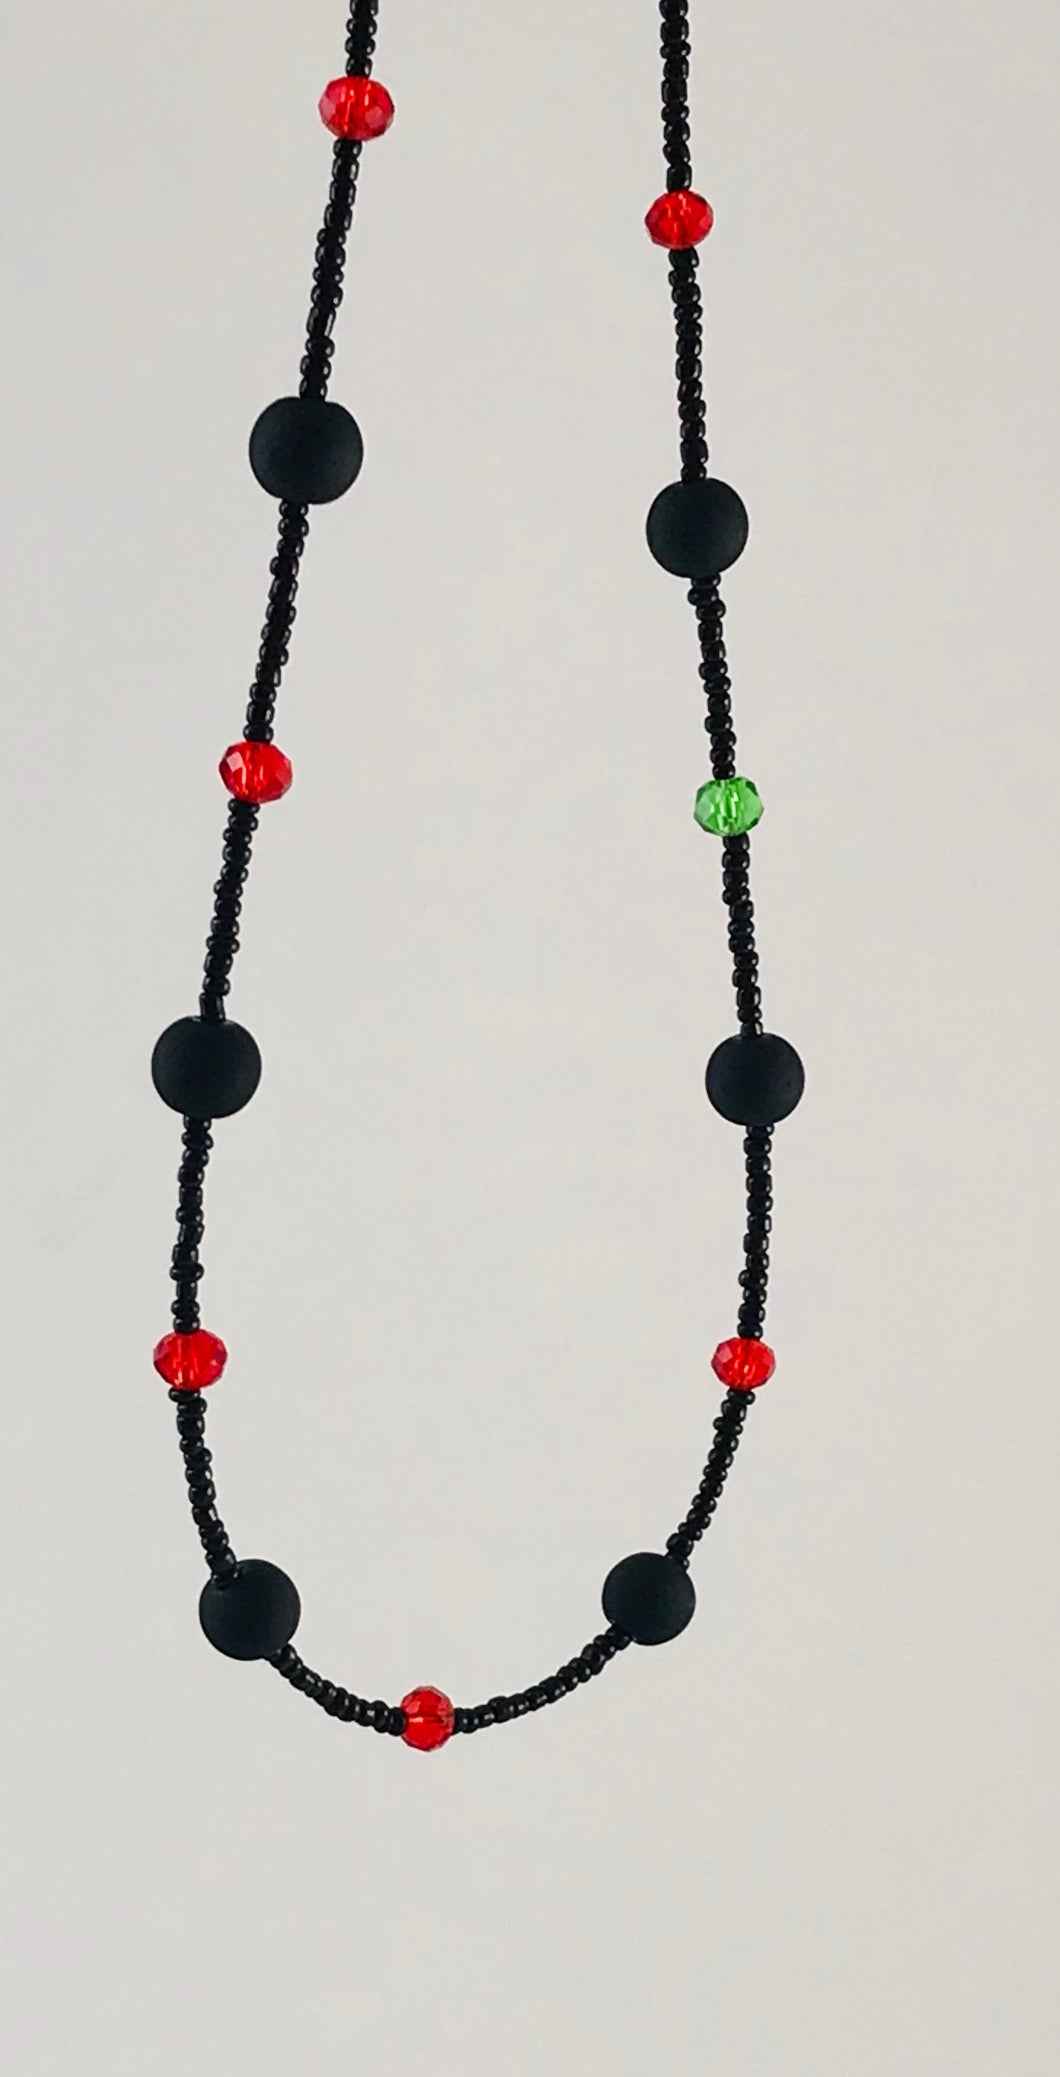 black and red glass bead necklace with contrasting green glass bead